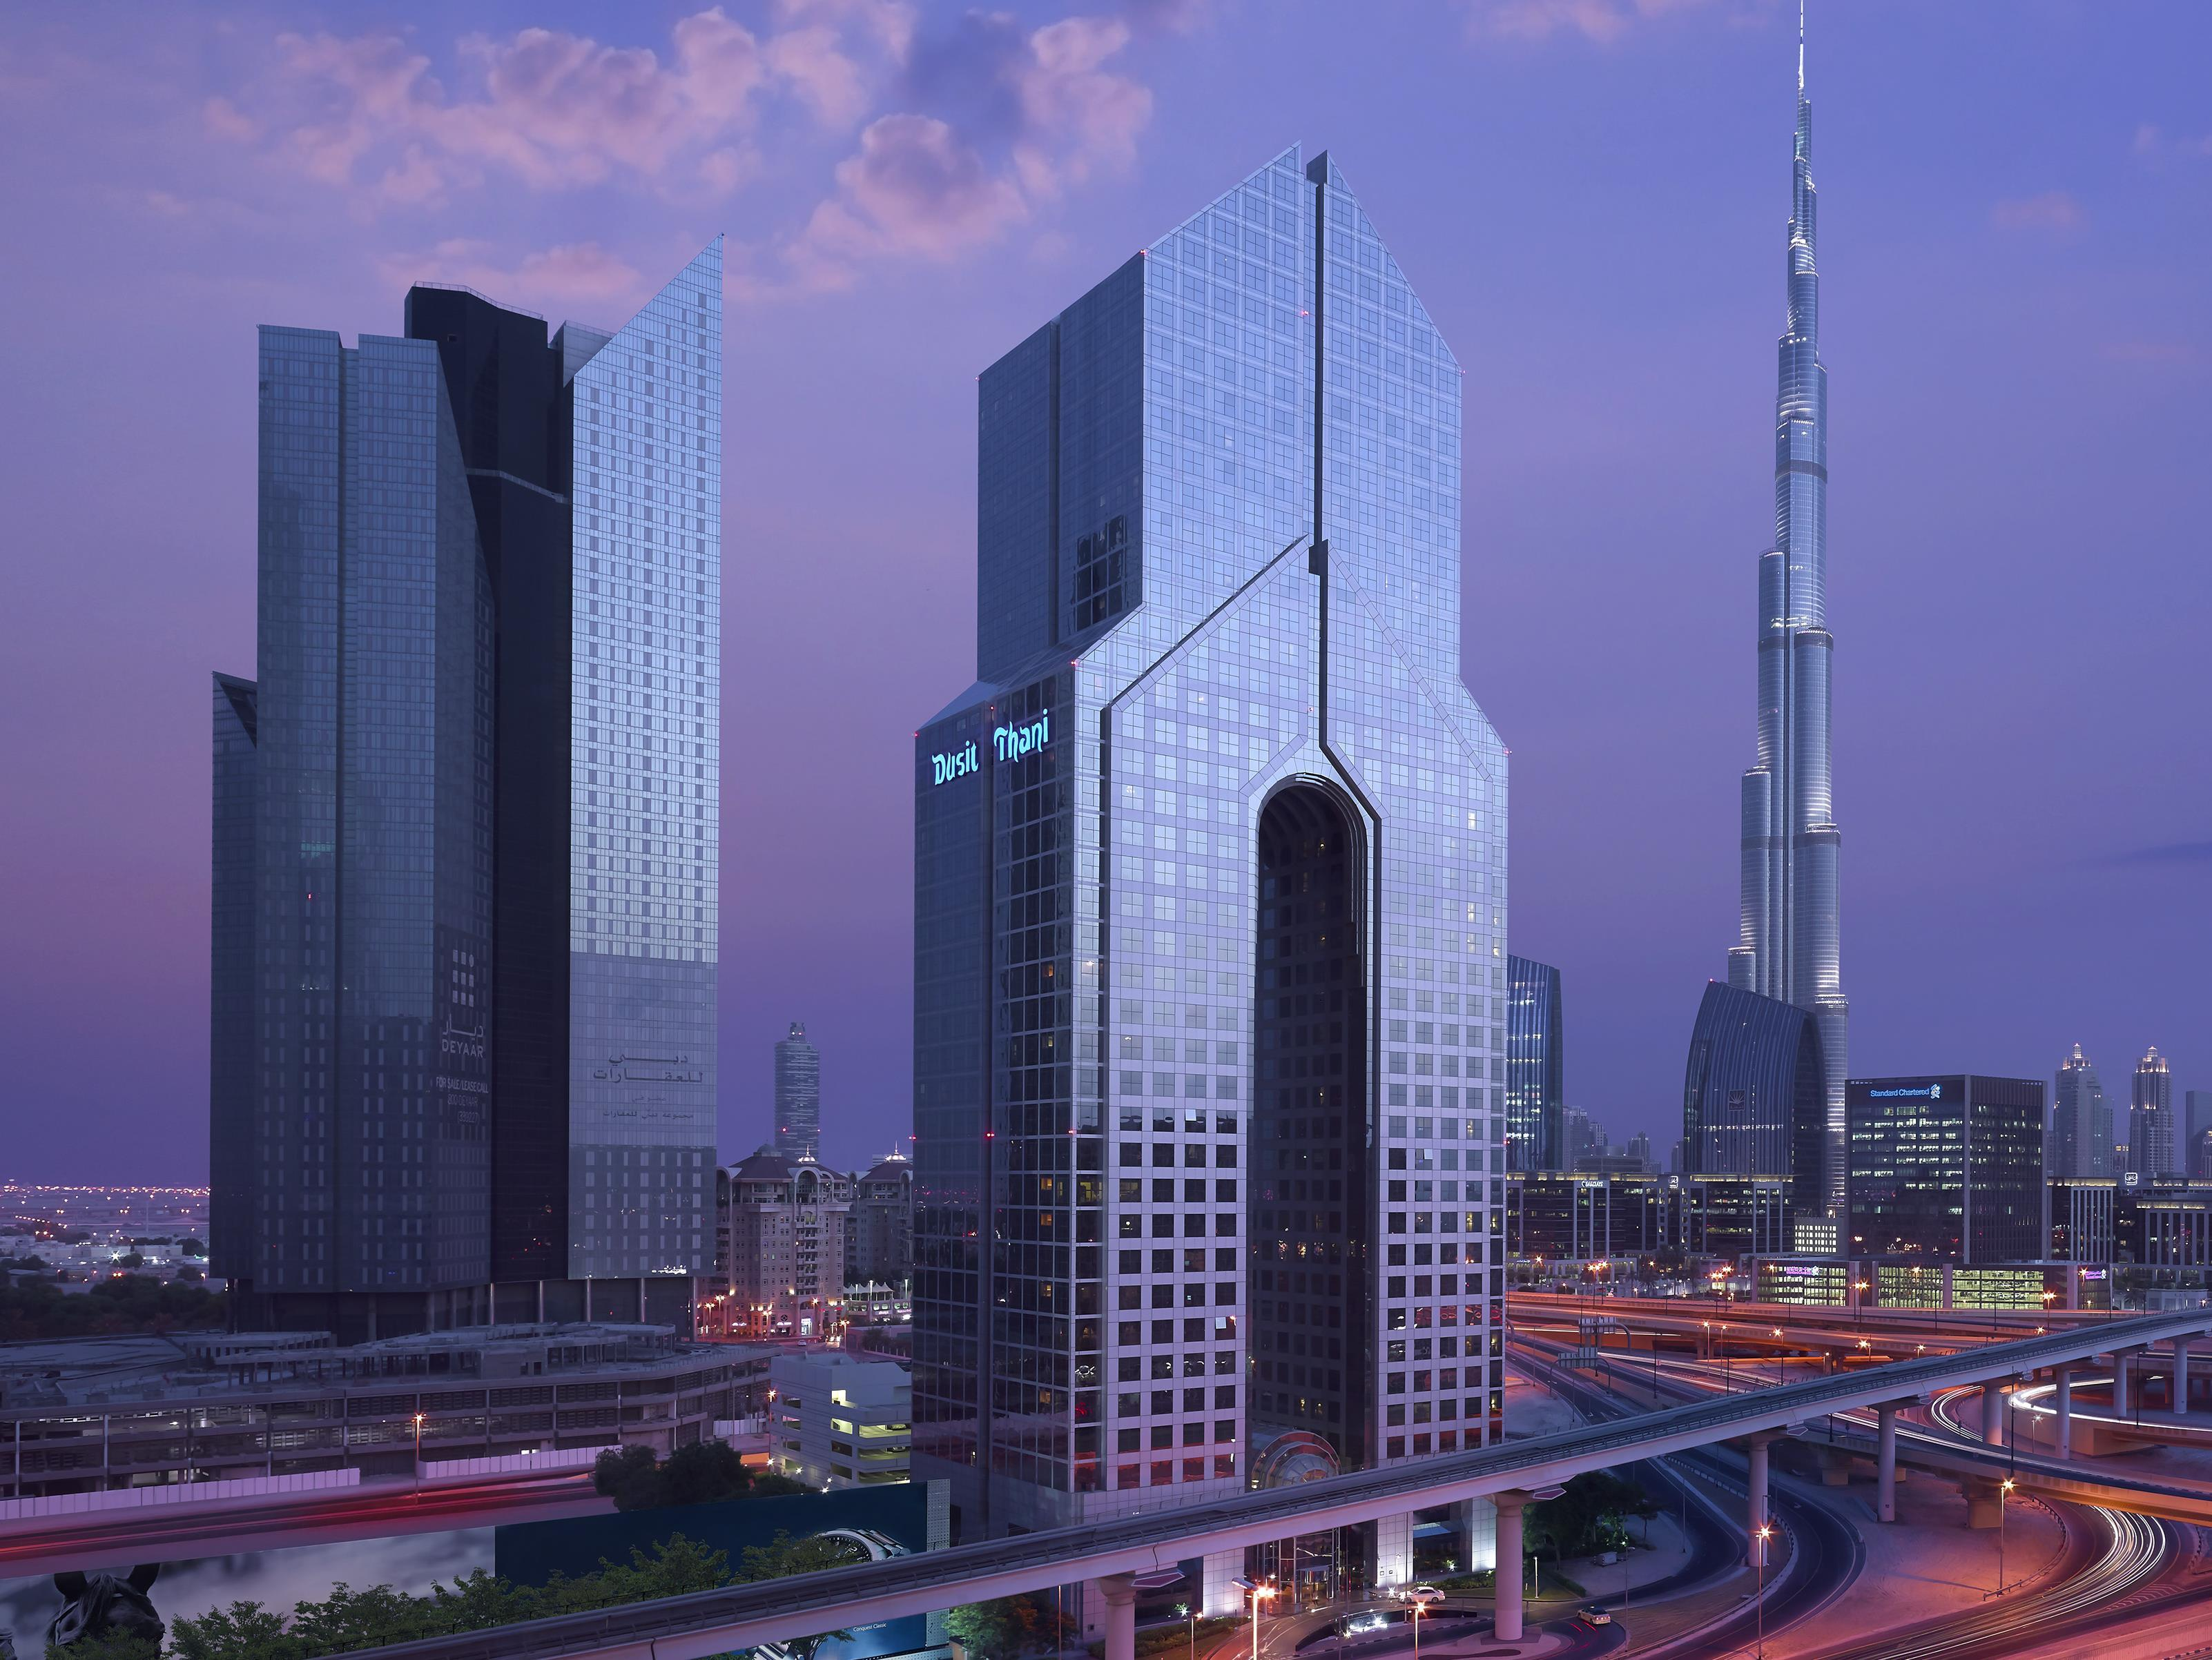 Dusit Thani Dubai Hotel Emirate of Dubai FAQ 2017, What facilities are there in Dusit Thani Dubai Hotel Emirate of Dubai 2017, What Languages Spoken are Supported in Dusit Thani Dubai Hotel Emirate of Dubai 2017, Which payment cards are accepted in Dusit Thani Dubai Hotel Emirate of Dubai , Emirate of Dubai Dusit Thani Dubai Hotel room facilities and services Q&A 2017, Emirate of Dubai Dusit Thani Dubai Hotel online booking services 2017, Emirate of Dubai Dusit Thani Dubai Hotel address 2017, Emirate of Dubai Dusit Thani Dubai Hotel telephone number 2017,Emirate of Dubai Dusit Thani Dubai Hotel map 2017, Emirate of Dubai Dusit Thani Dubai Hotel traffic guide 2017, how to go Emirate of Dubai Dusit Thani Dubai Hotel, Emirate of Dubai Dusit Thani Dubai Hotel booking online 2017, Emirate of Dubai Dusit Thani Dubai Hotel room types 2017.